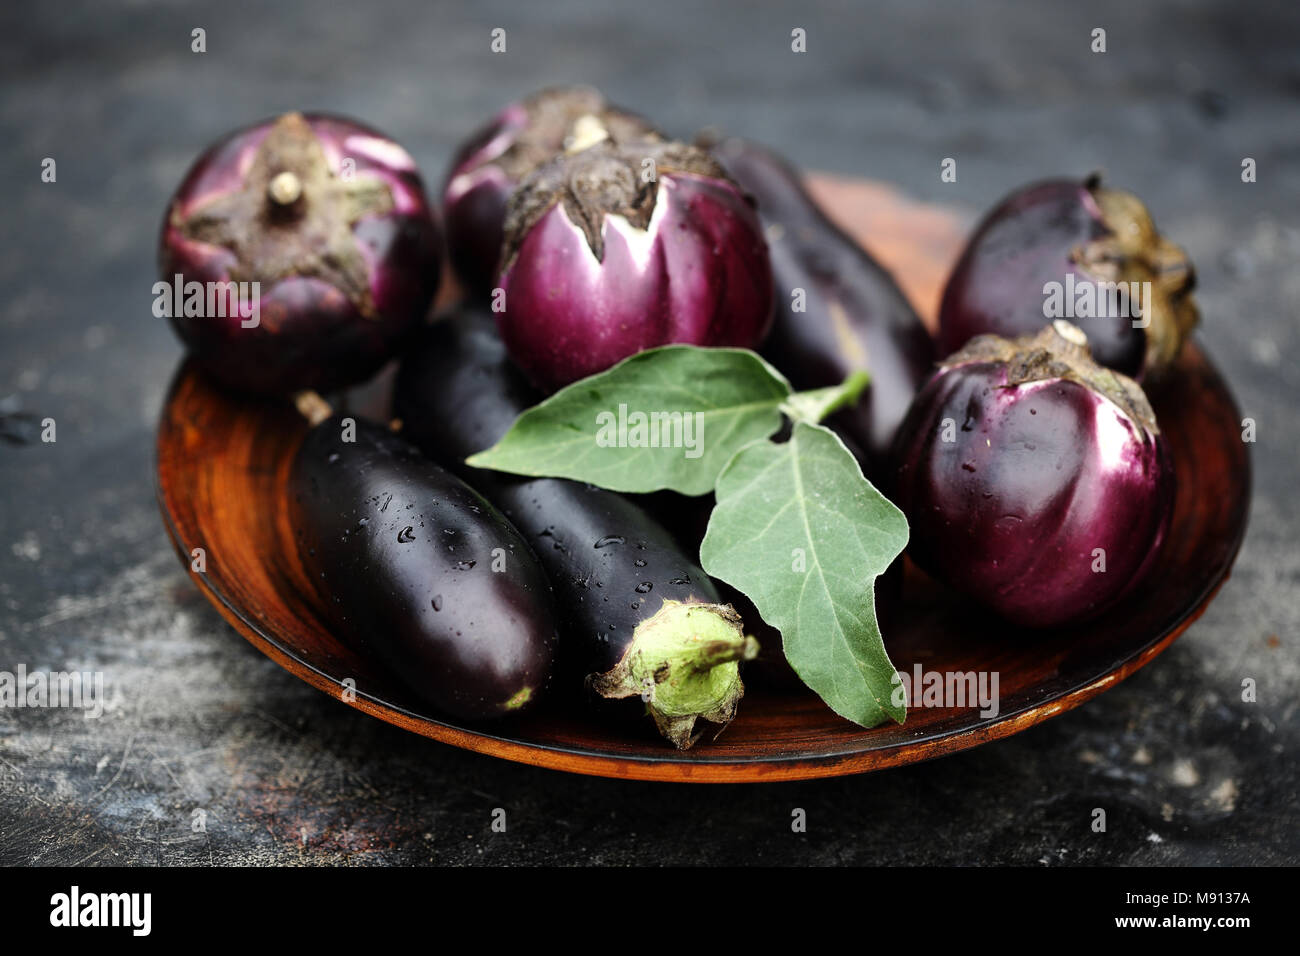 ripe purple eggplant - Stock Image